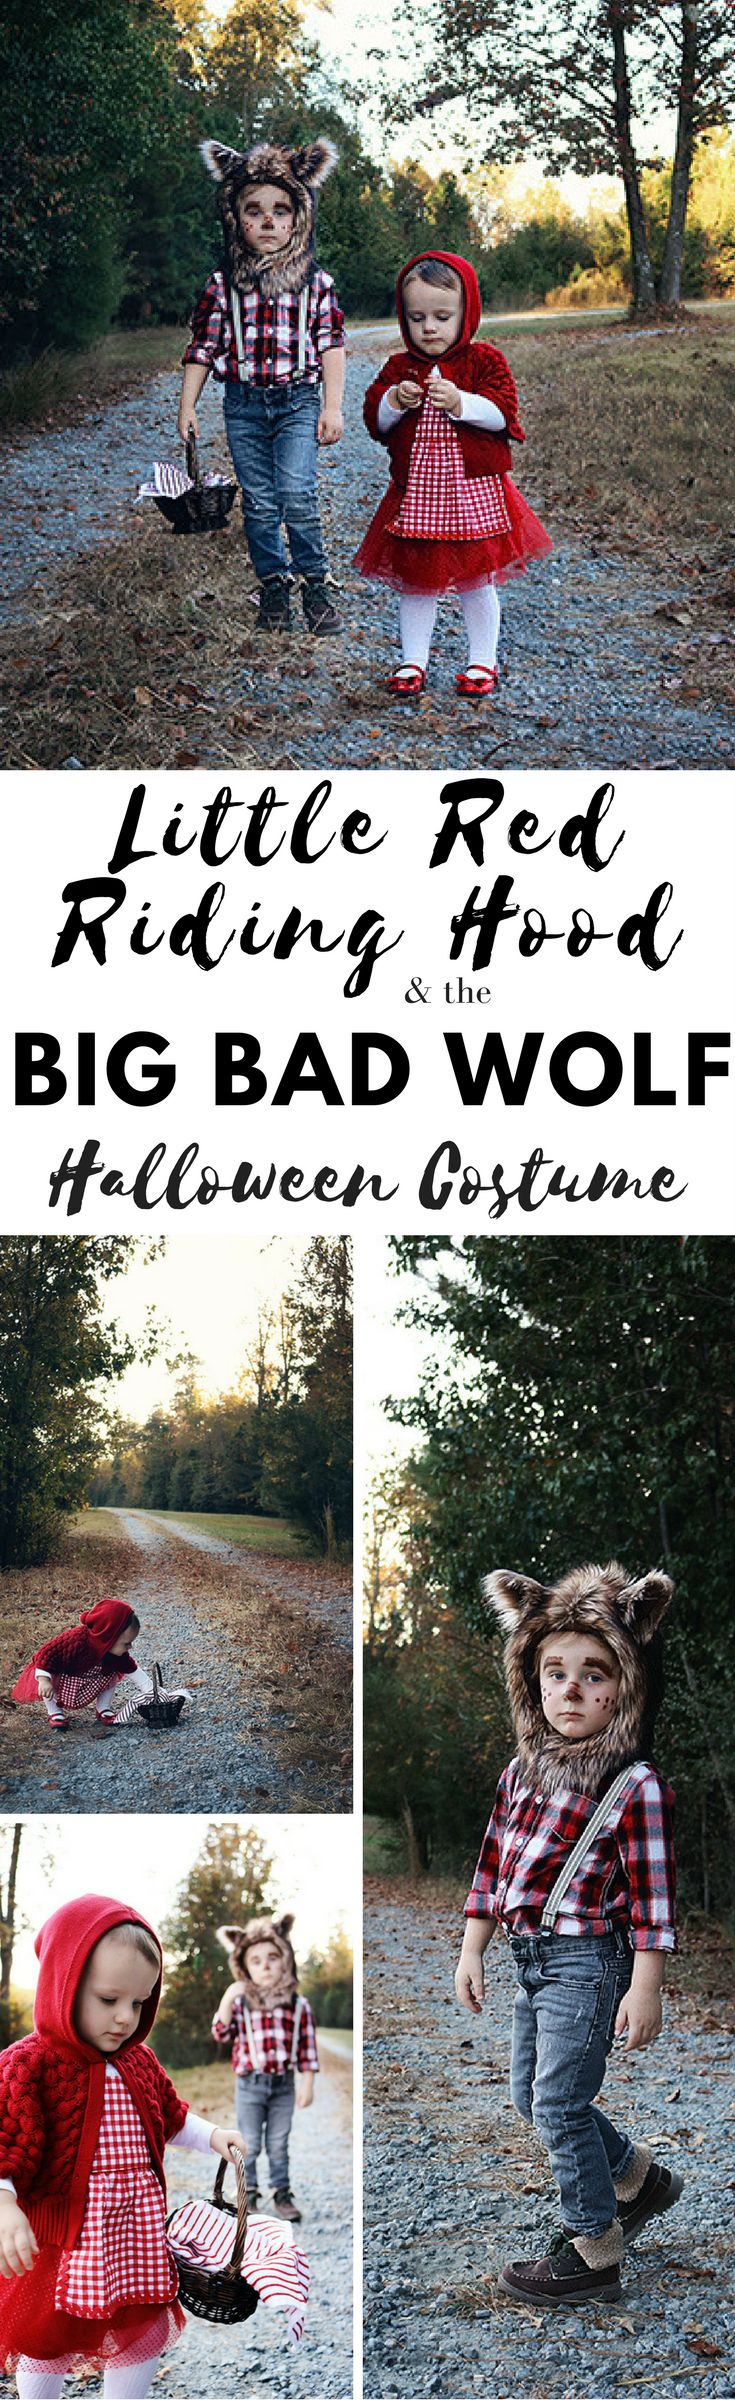 DIY HALLOWEEN |  HALLOWEEN COSTUMES FOR KIDS | BROTHER AND SISTER HALLOWEEN COSTUMES | HALLOWEEN DIY COSTUMES | SIBLING HALLOWEEN COSTUME IDEAS |  HALLOWEEN COSTUME IDEAS FOR KIDS | FAMILY HALLOWEEN | LITTLE RED RIDING HOOD HALLOWEEN COSTUME | BIG BAD WOLF HALLOWEEN COSTUME | UNIQUE COSTUME IDEAS FOR KIDS |